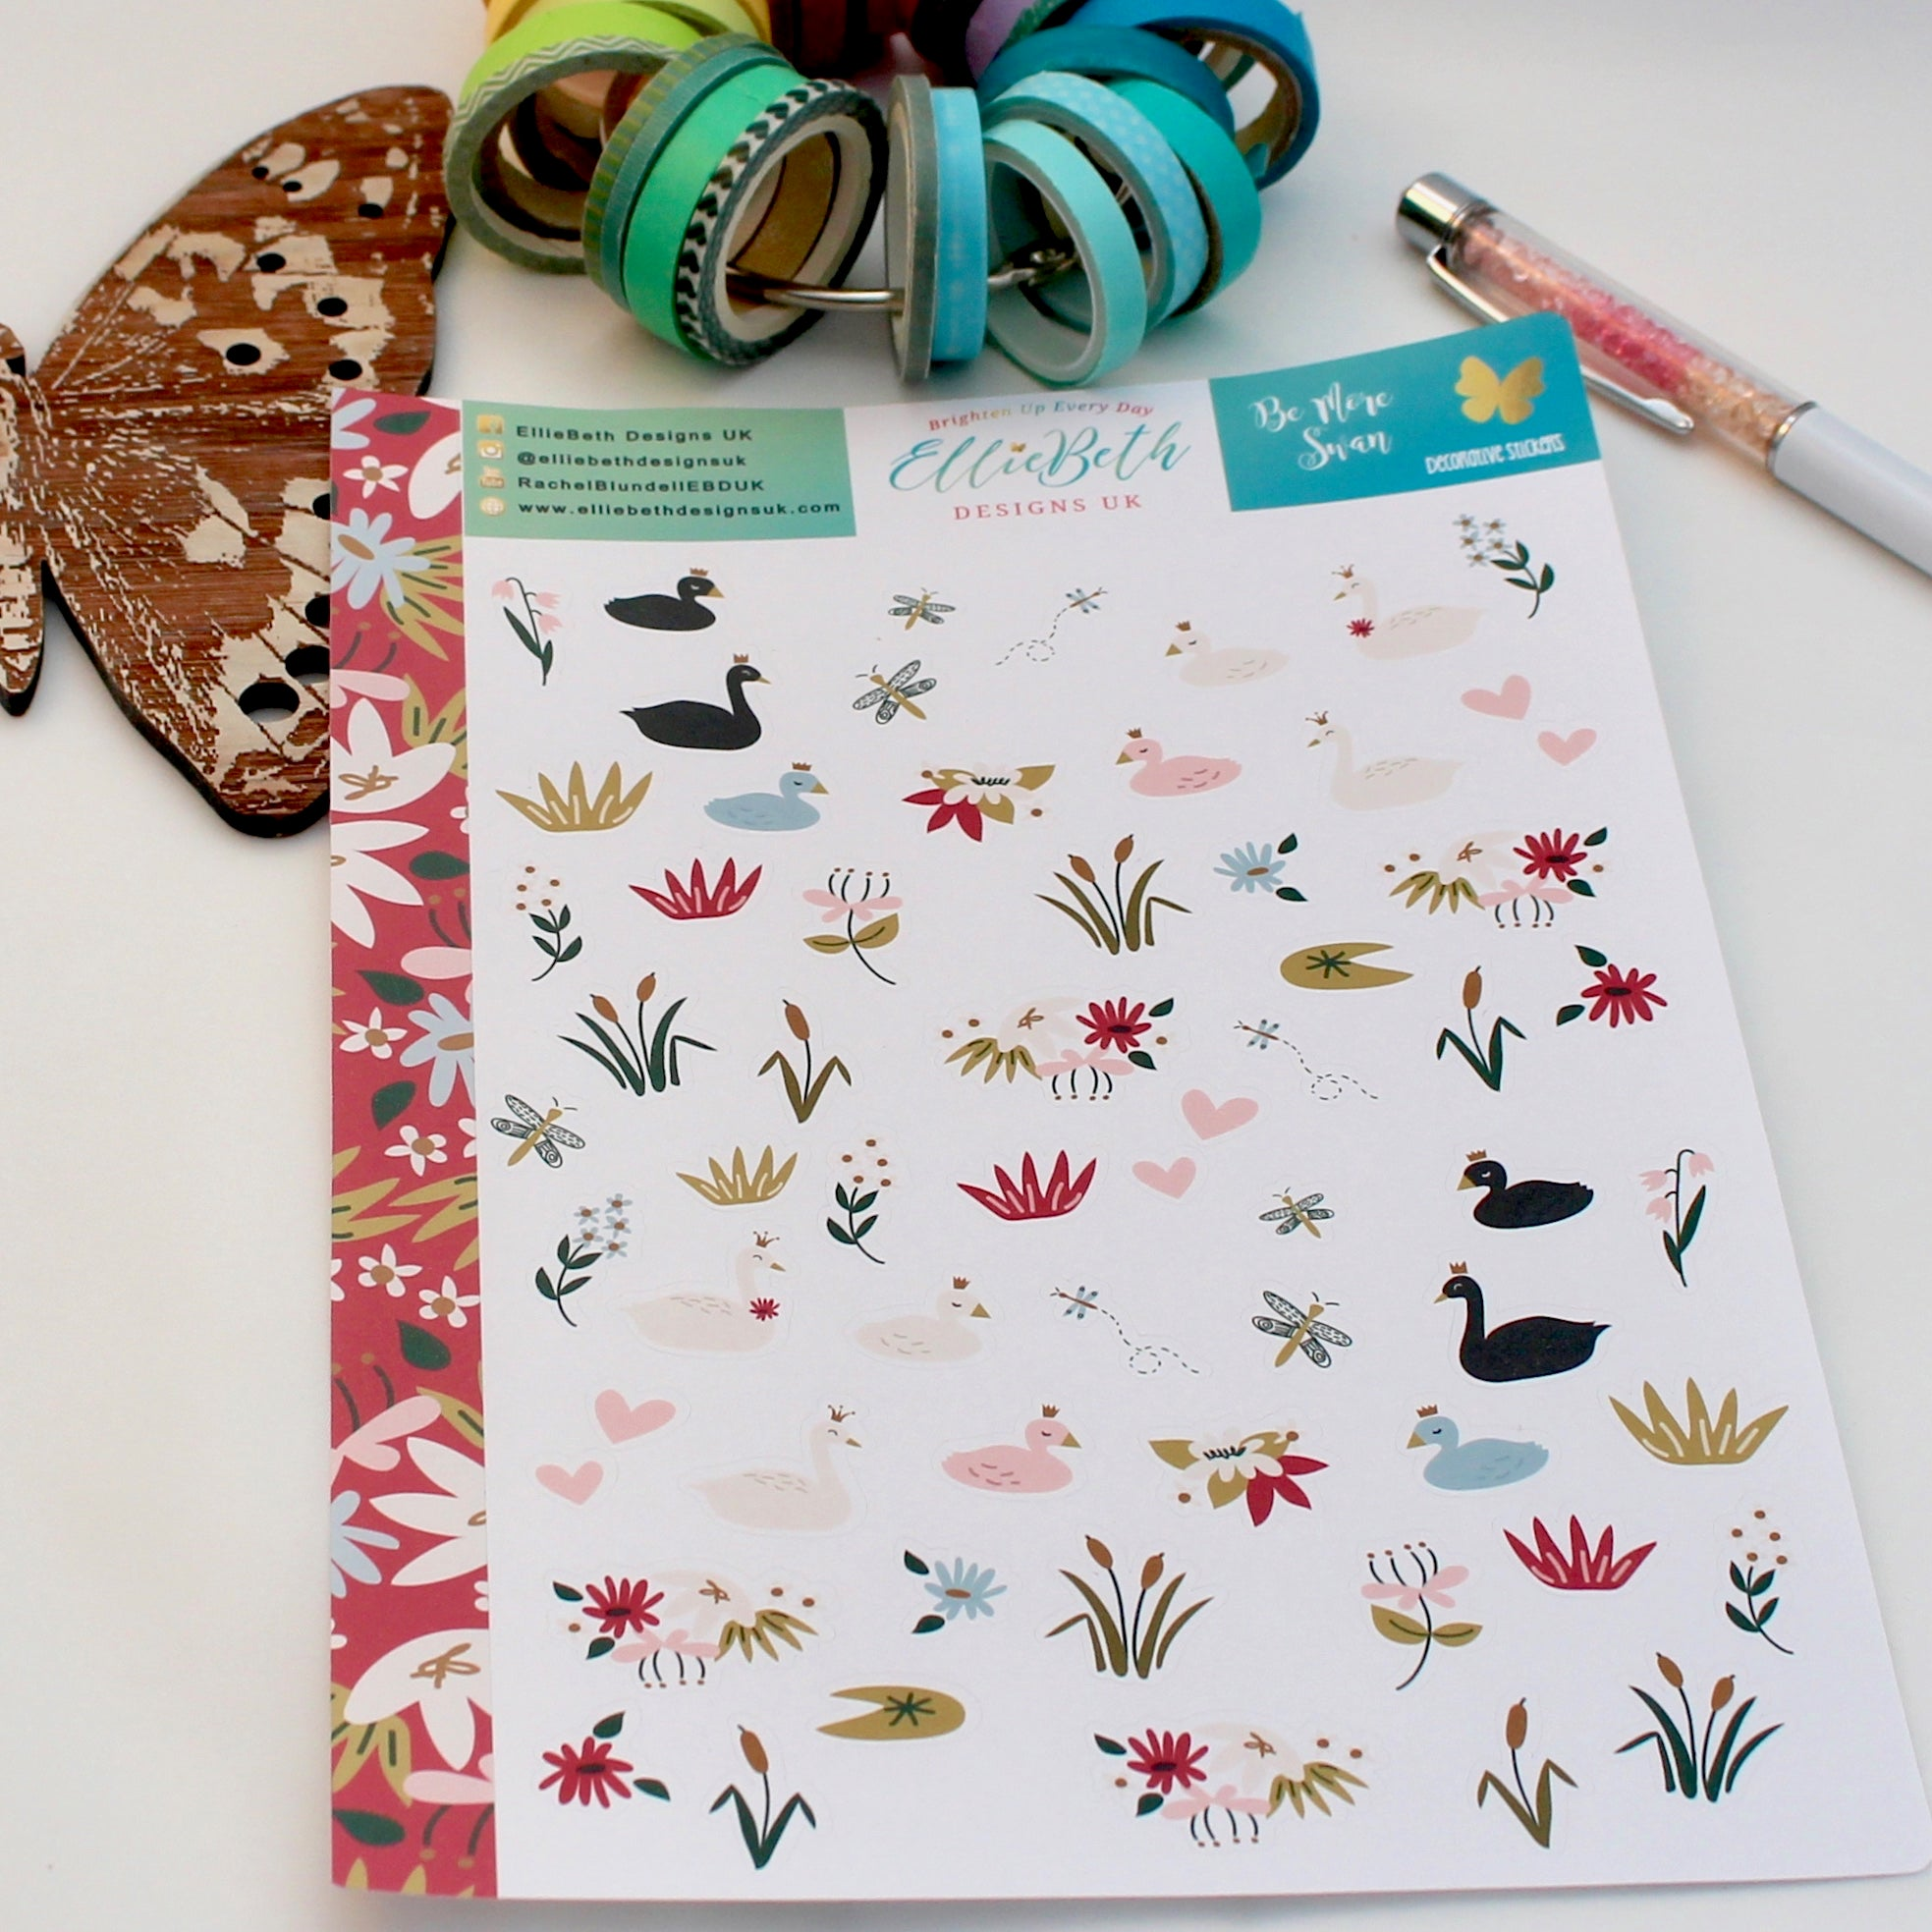 'Be More Swan' - Decorative Sheet -  A5 binder ready planner stickers